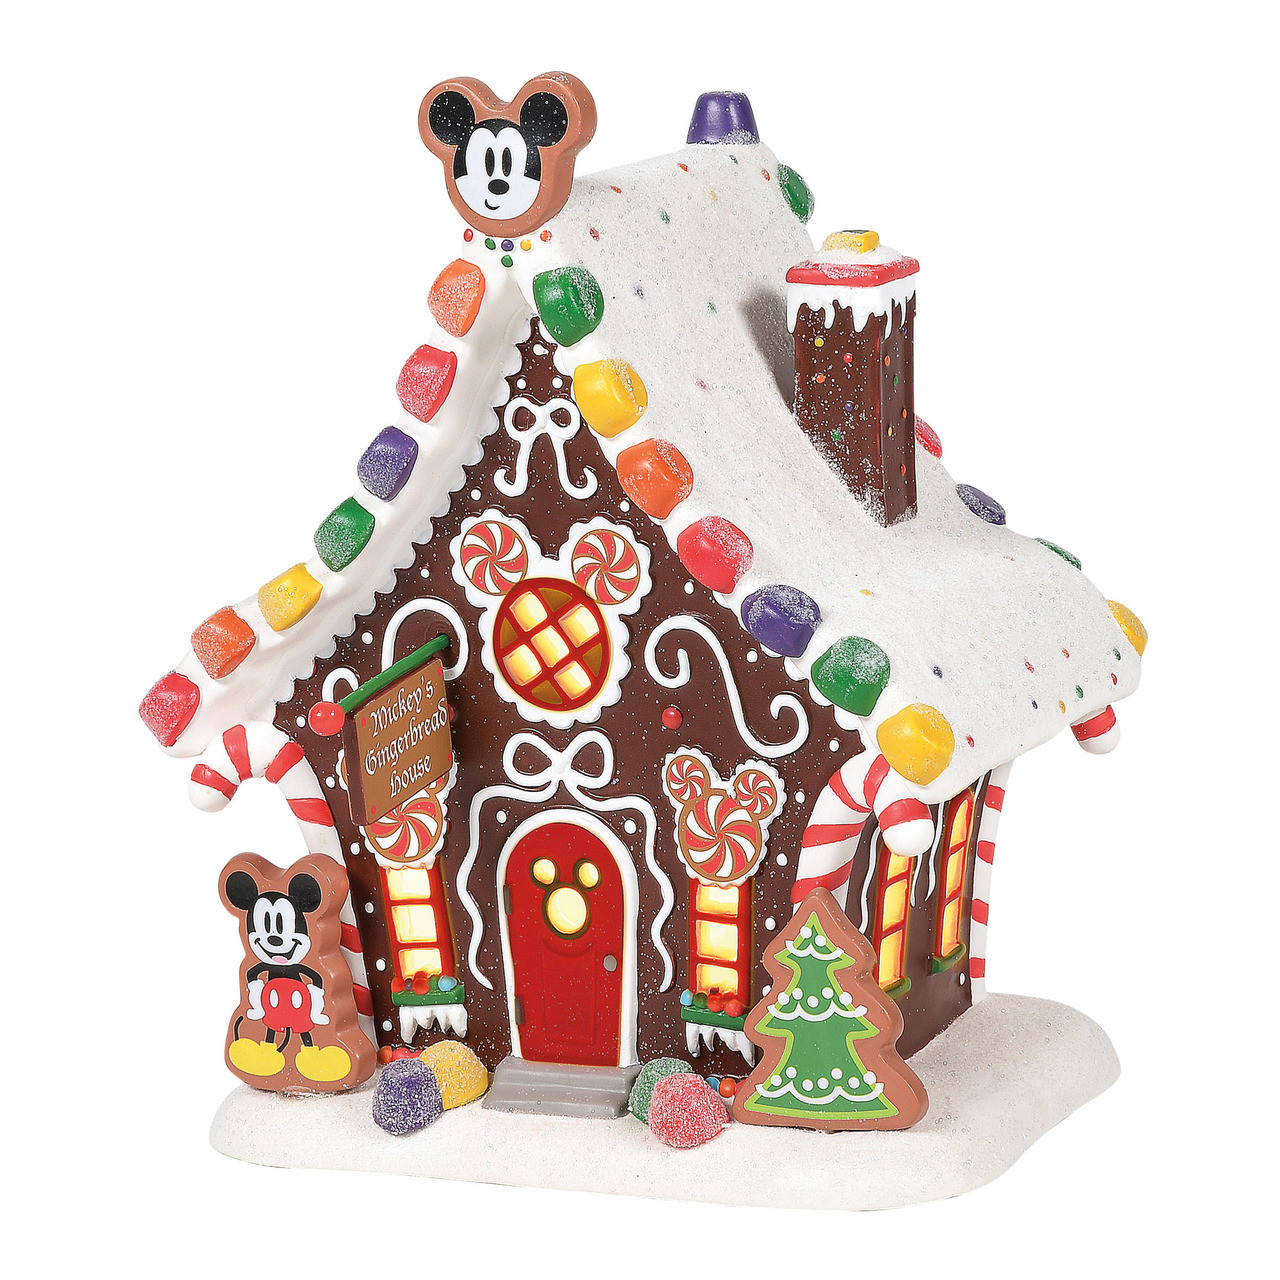 Dept 56 Disney COTTON CANDY DELIGHT Mickey/'s Merry Christmas Village